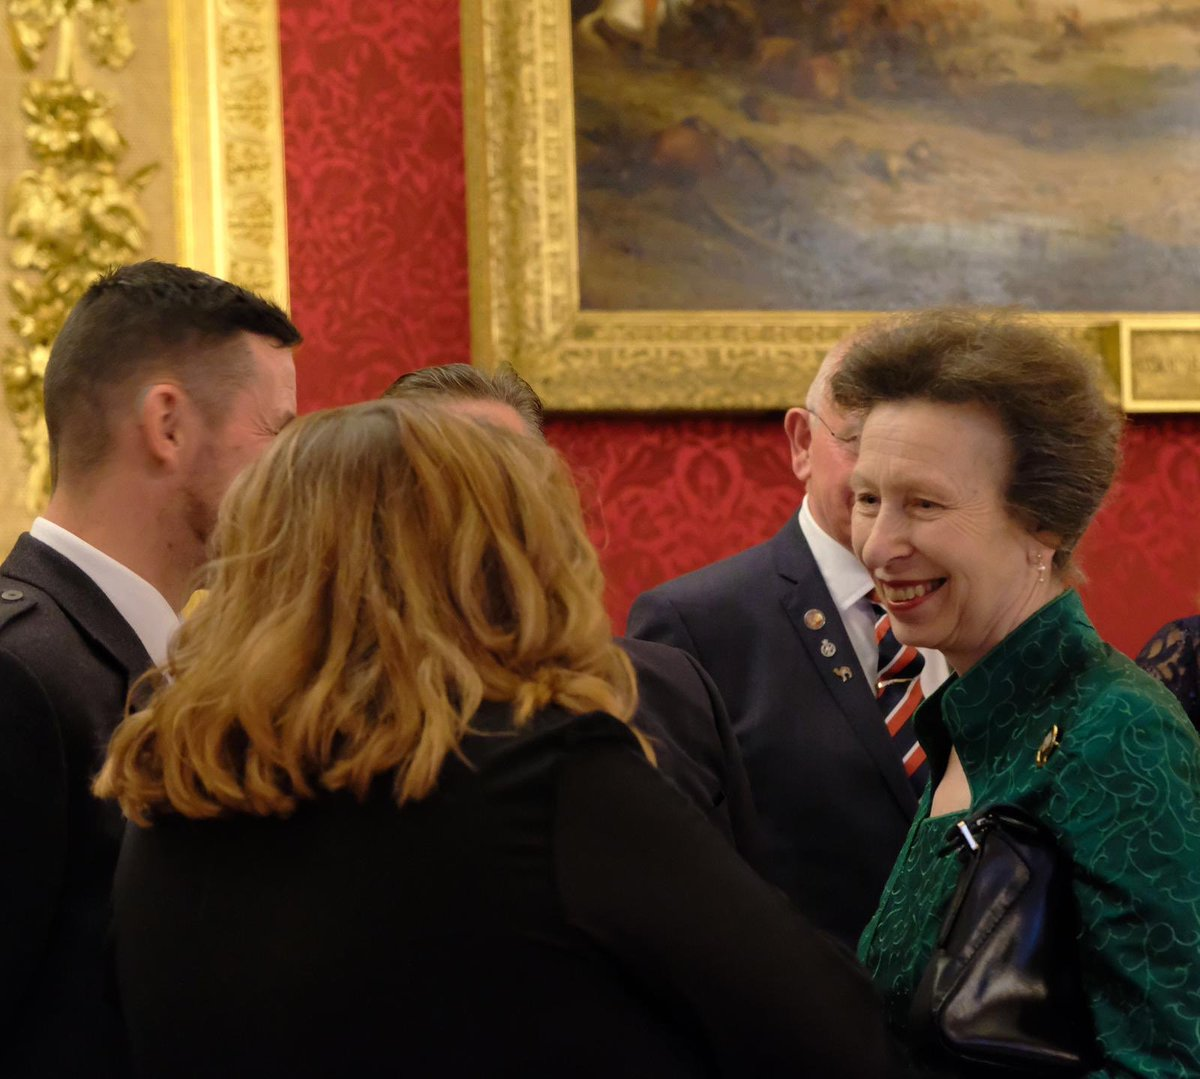 The Princess Royal attended the annual Christmas reception for 'The Not Forgotten' ex-servicemen and women at St James's Palace yesterday 🎄✨🎉 @nfassociation supports over 10,000 vulnerable members of the Armed Forces each year.